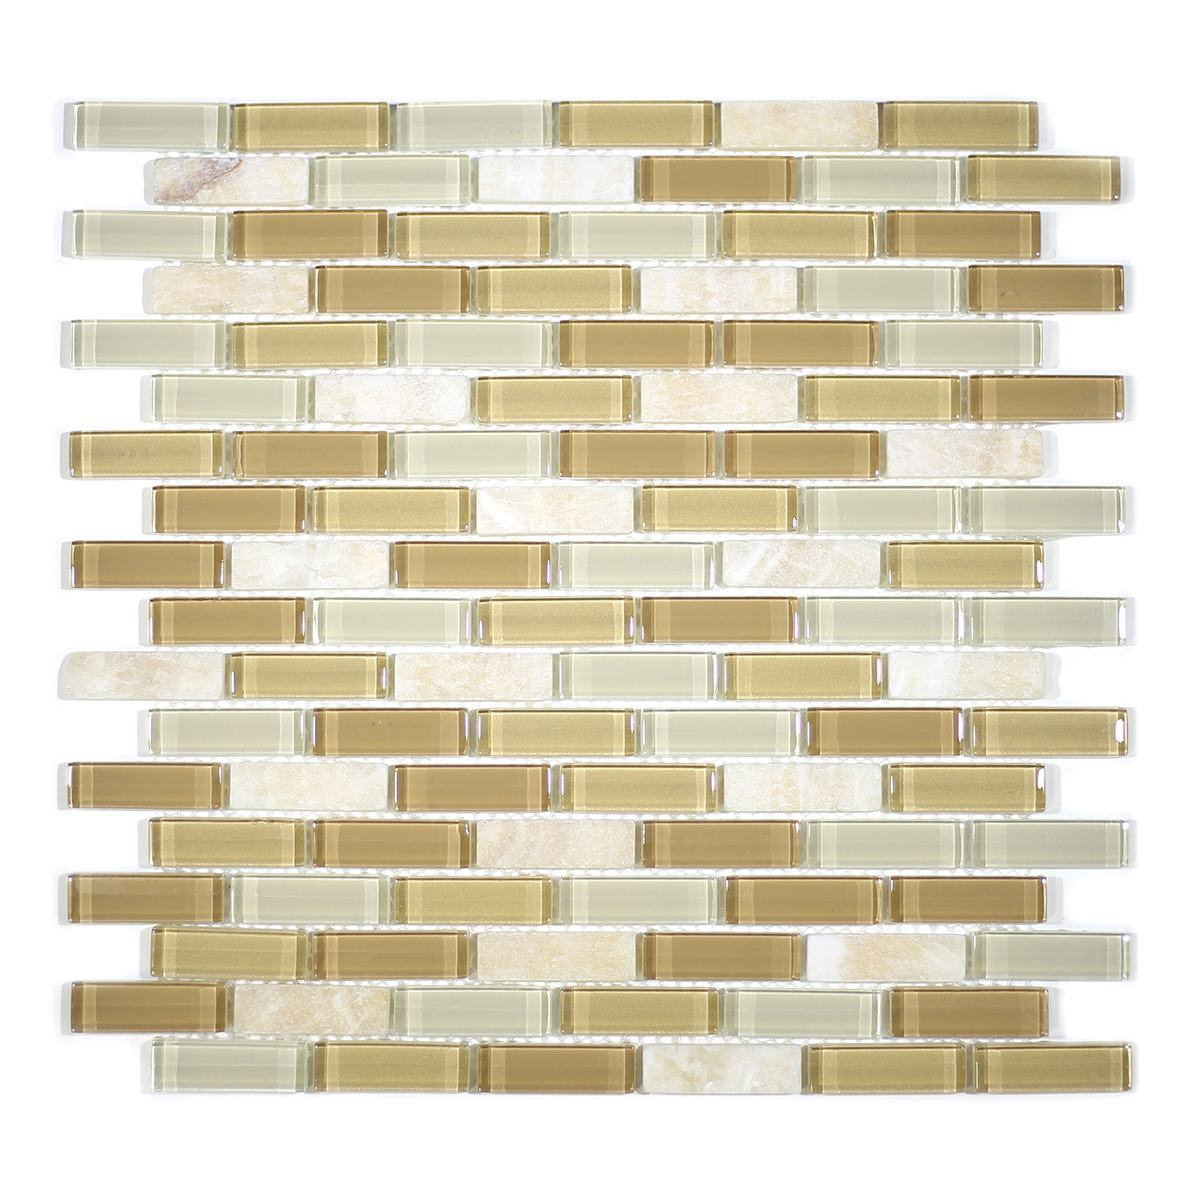 "MA12-LB 2"" BRICK GLASS AND STONE MOSAIC BLEND"